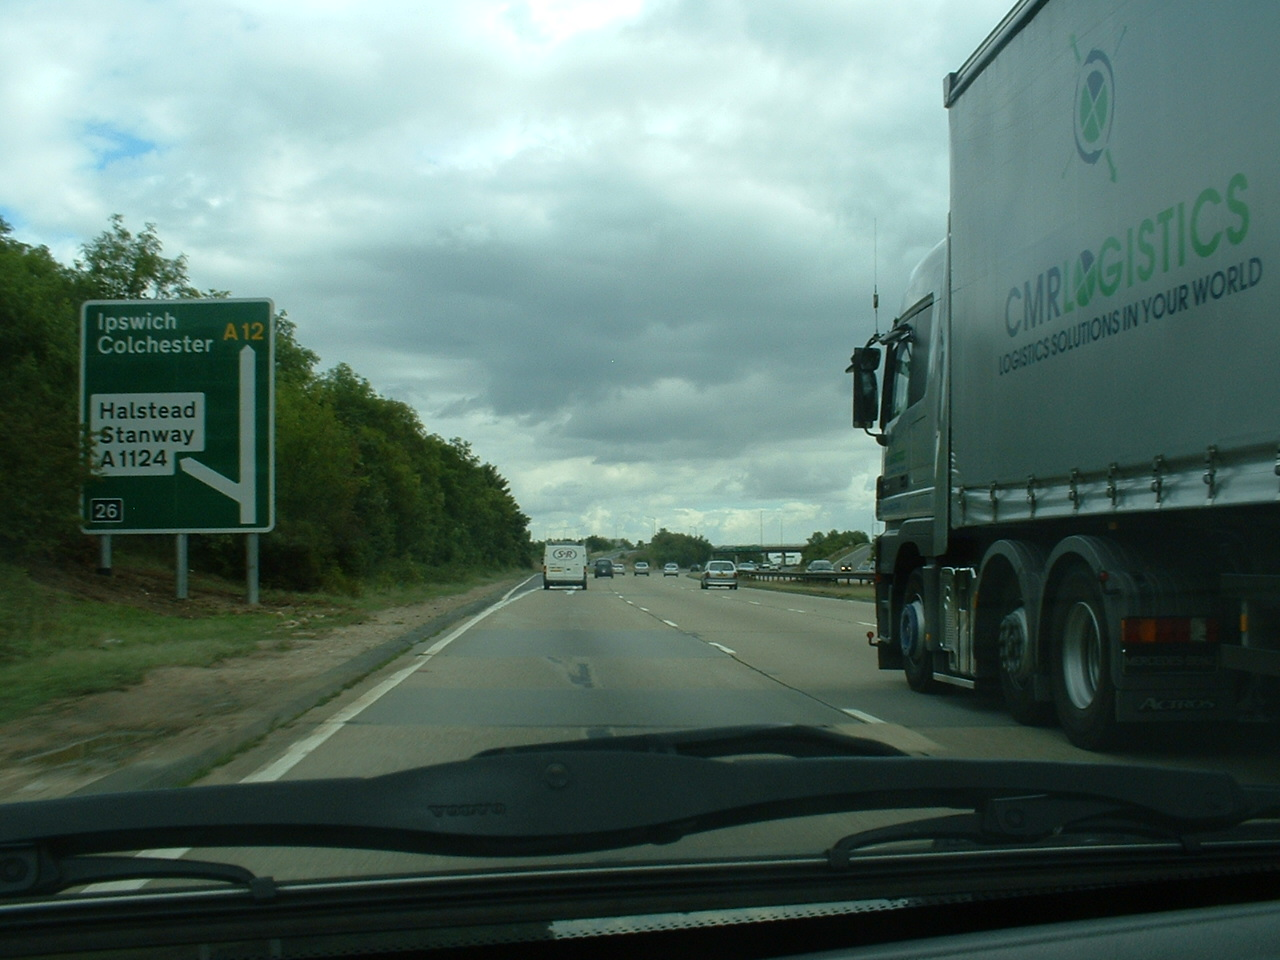 A12 road (England)